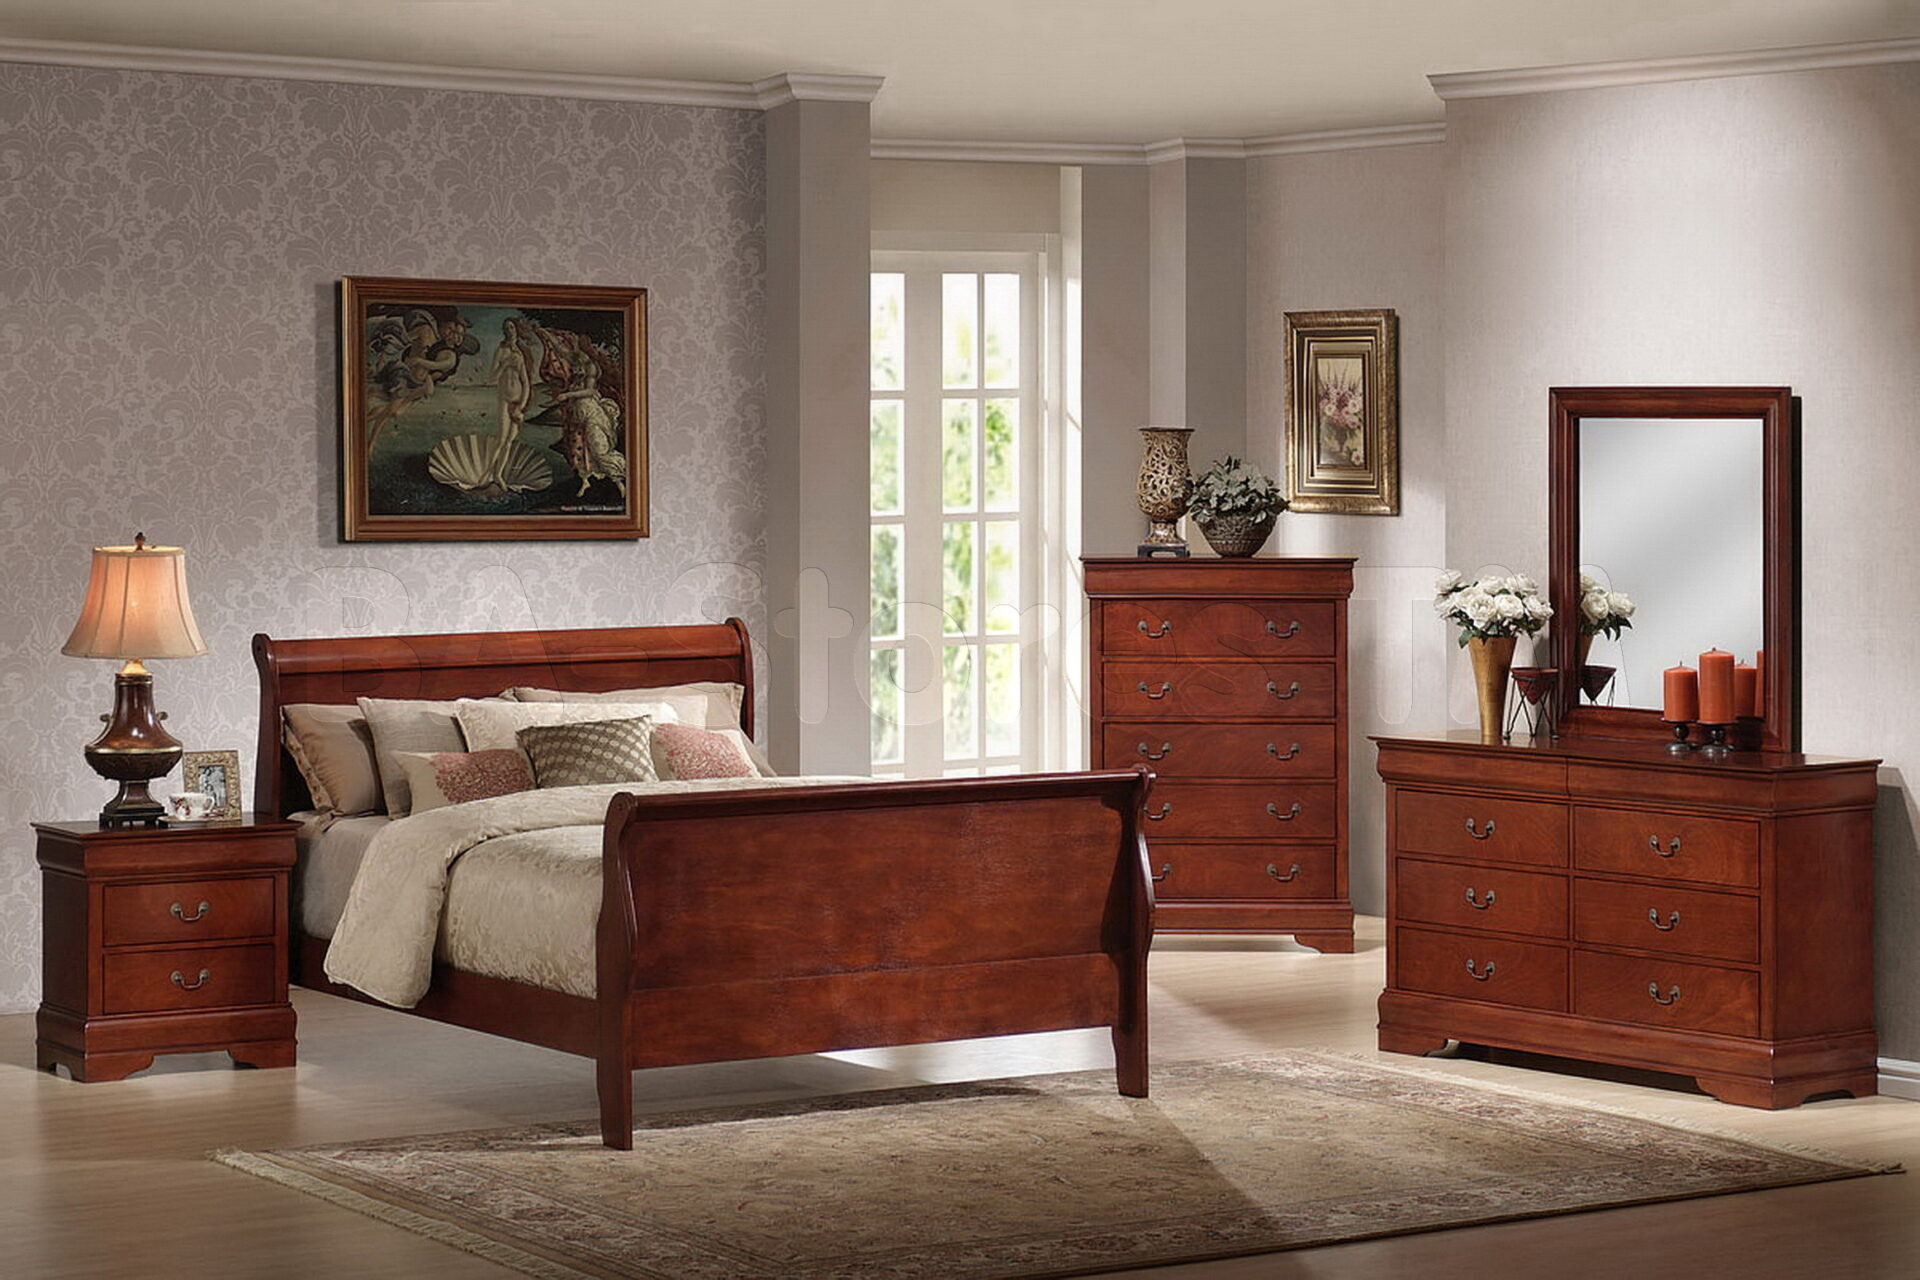 Cherry wood furniture bedroom decor ideas for Furniture ideas bedroom